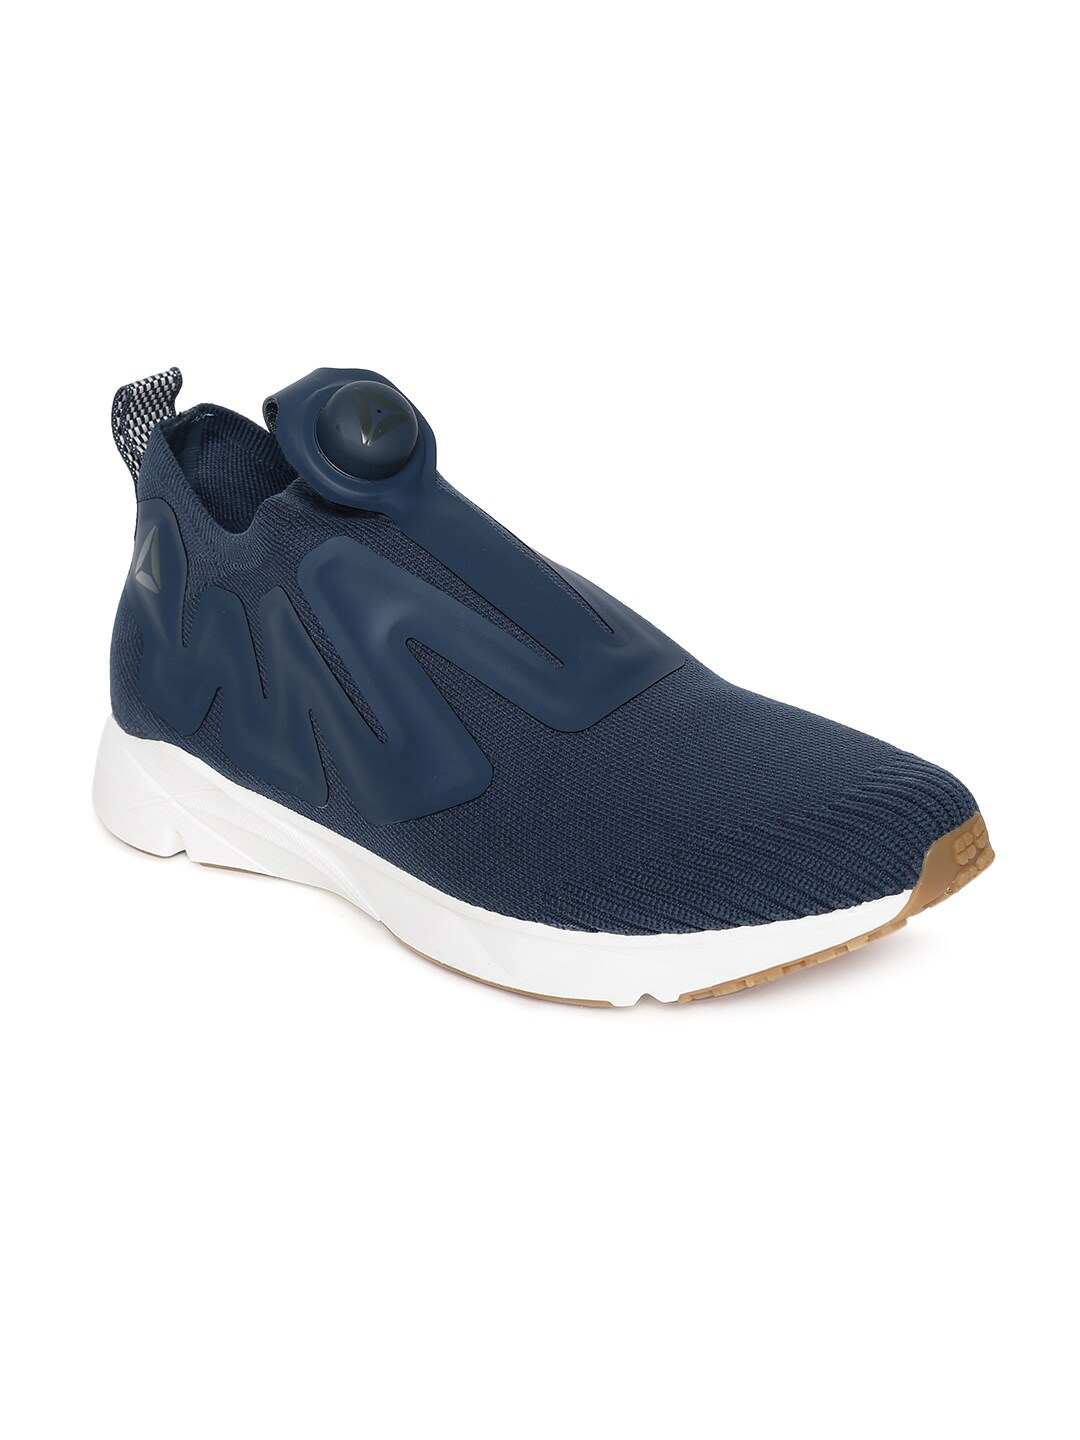 3c4899a16 Reebok Slip On Shoes - Buy Reebok Slip On Shoes online in India